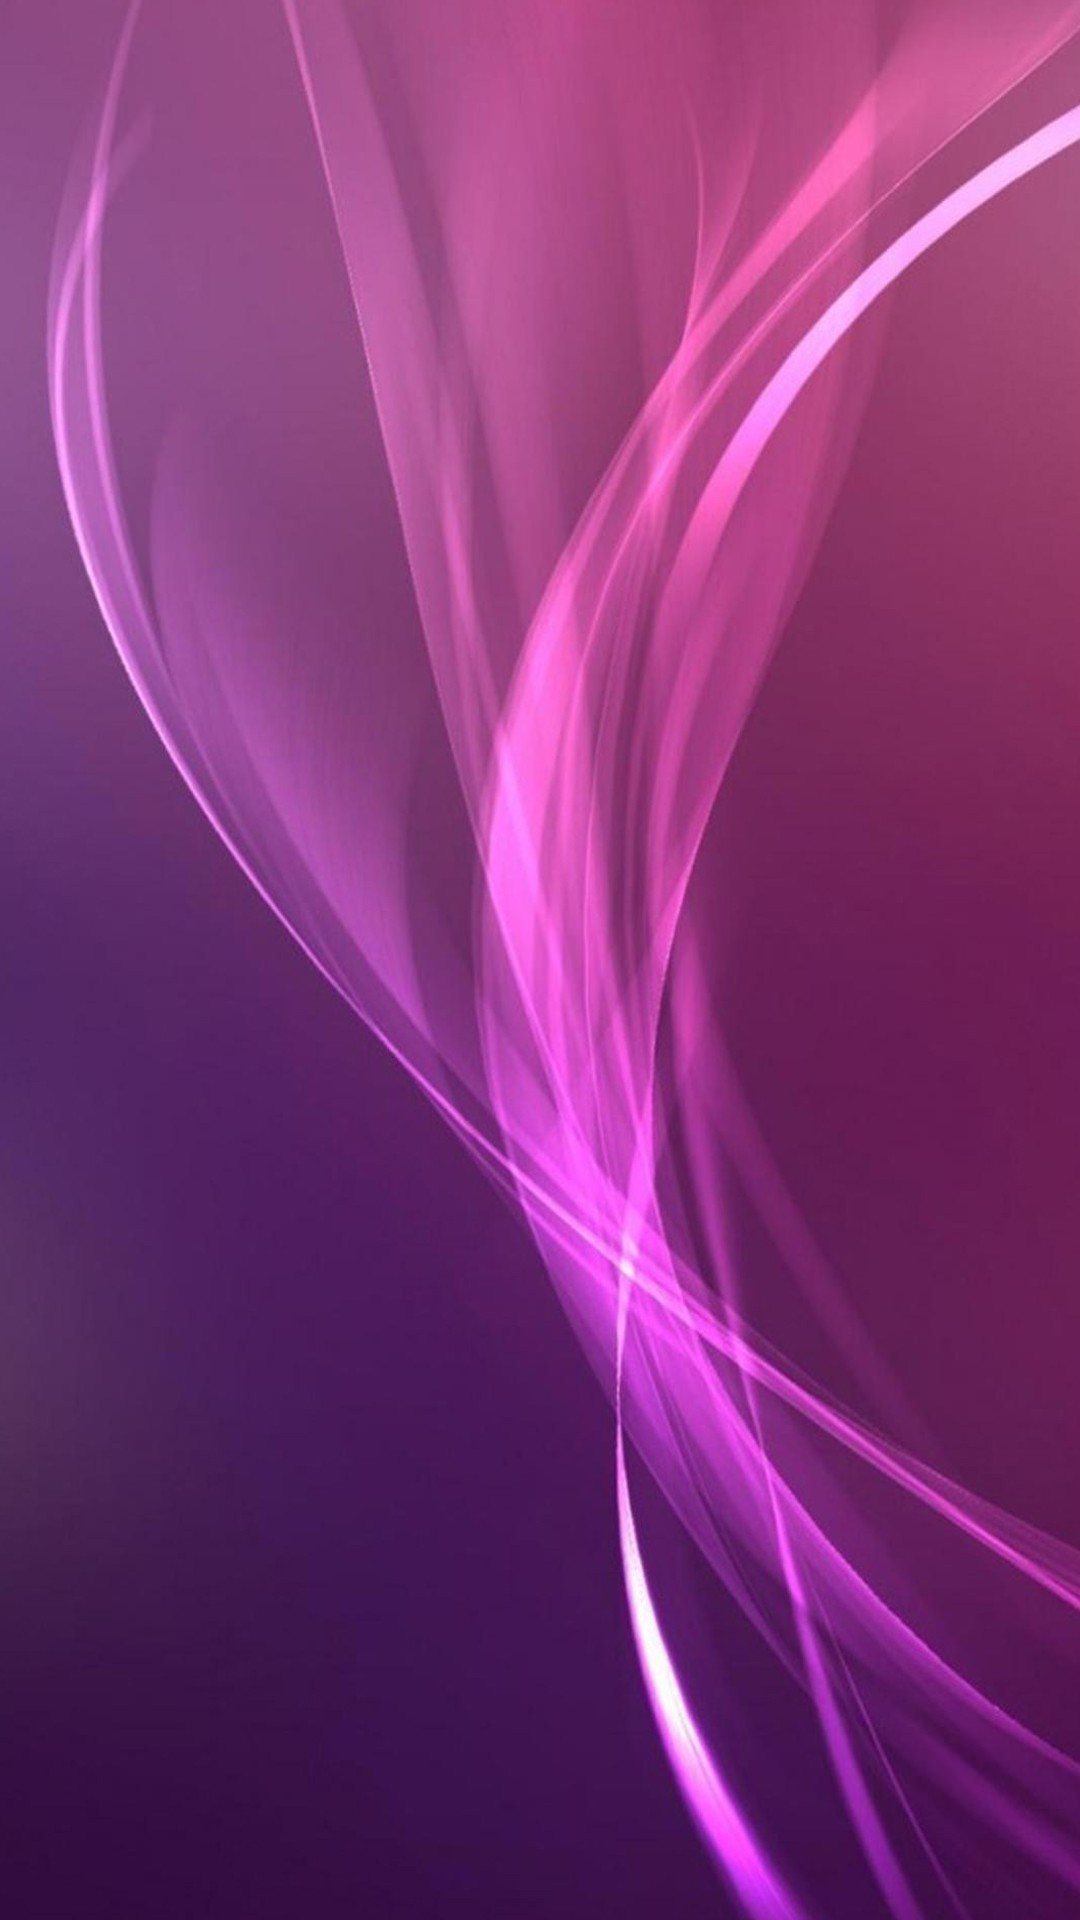 https://mwp4.me/abstract/purple-translucent-curves-